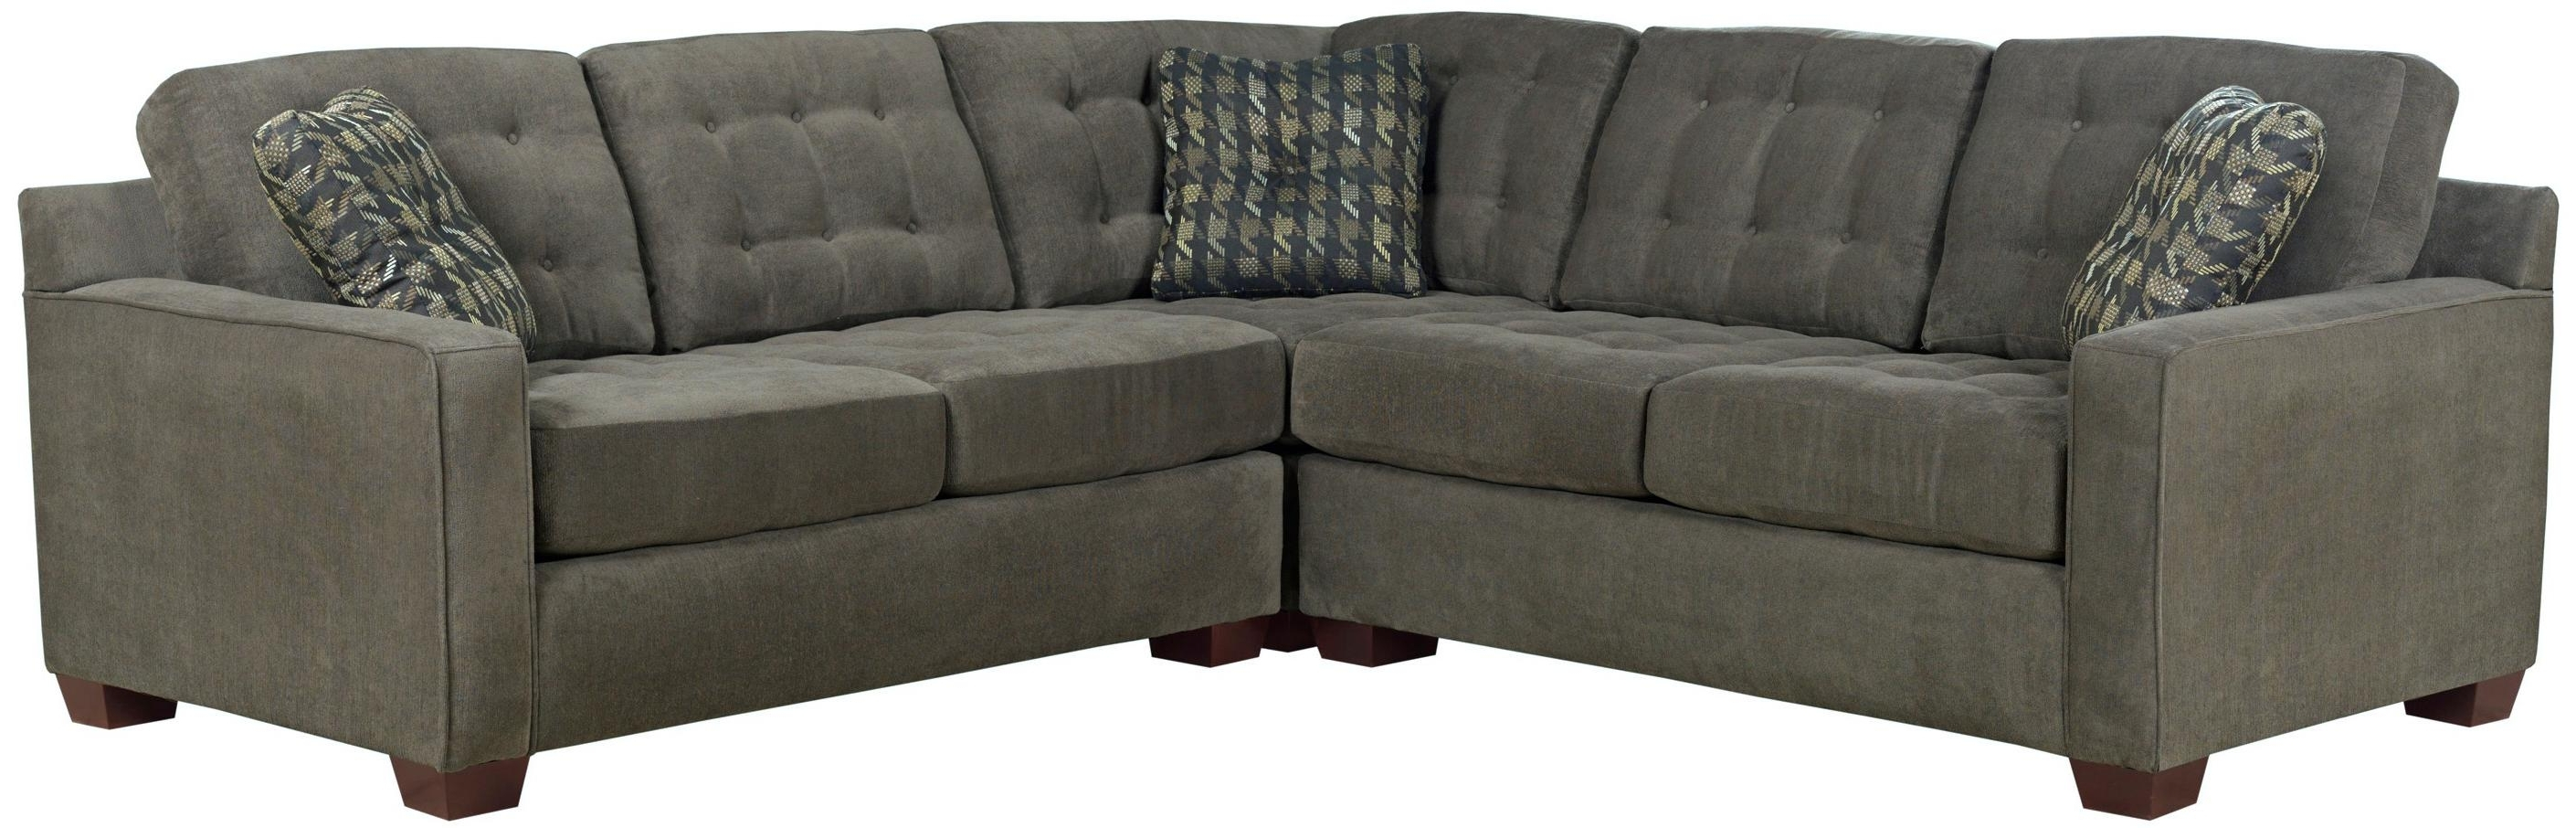 Most Recent Broyhill Sectional Sofas Regarding Broyhill Furniture Tribeca Contemporary L Shaped Sectional Sofa (View 7 of 15)